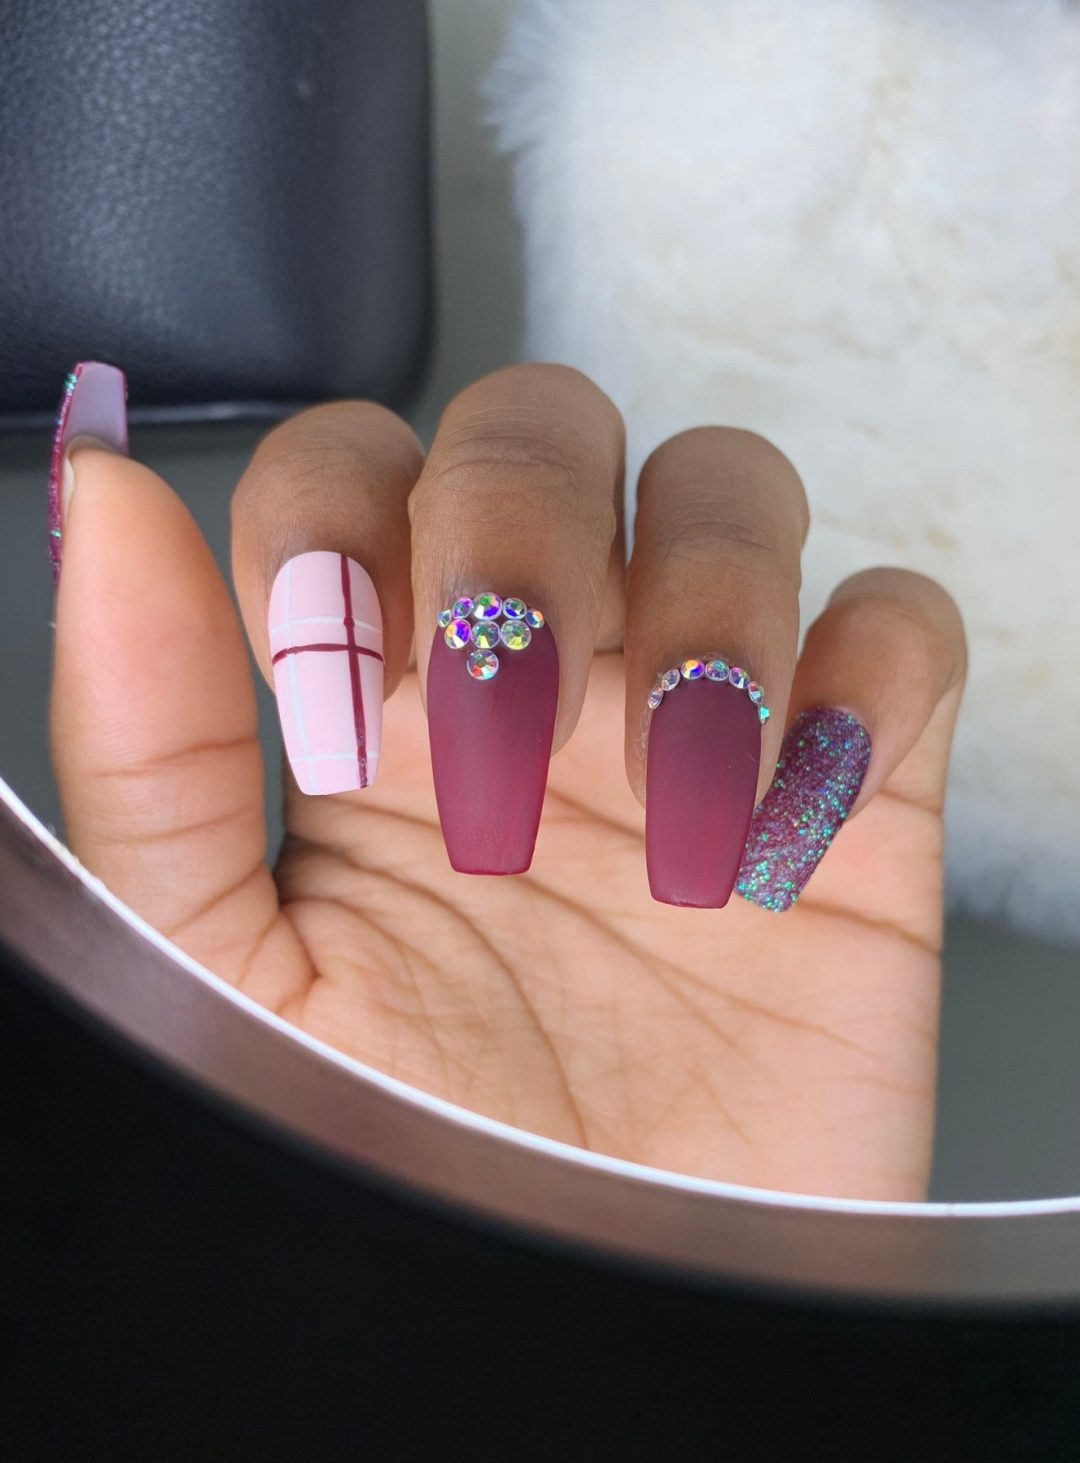 Cute matte plum plaid nails with glitter and rhinestones